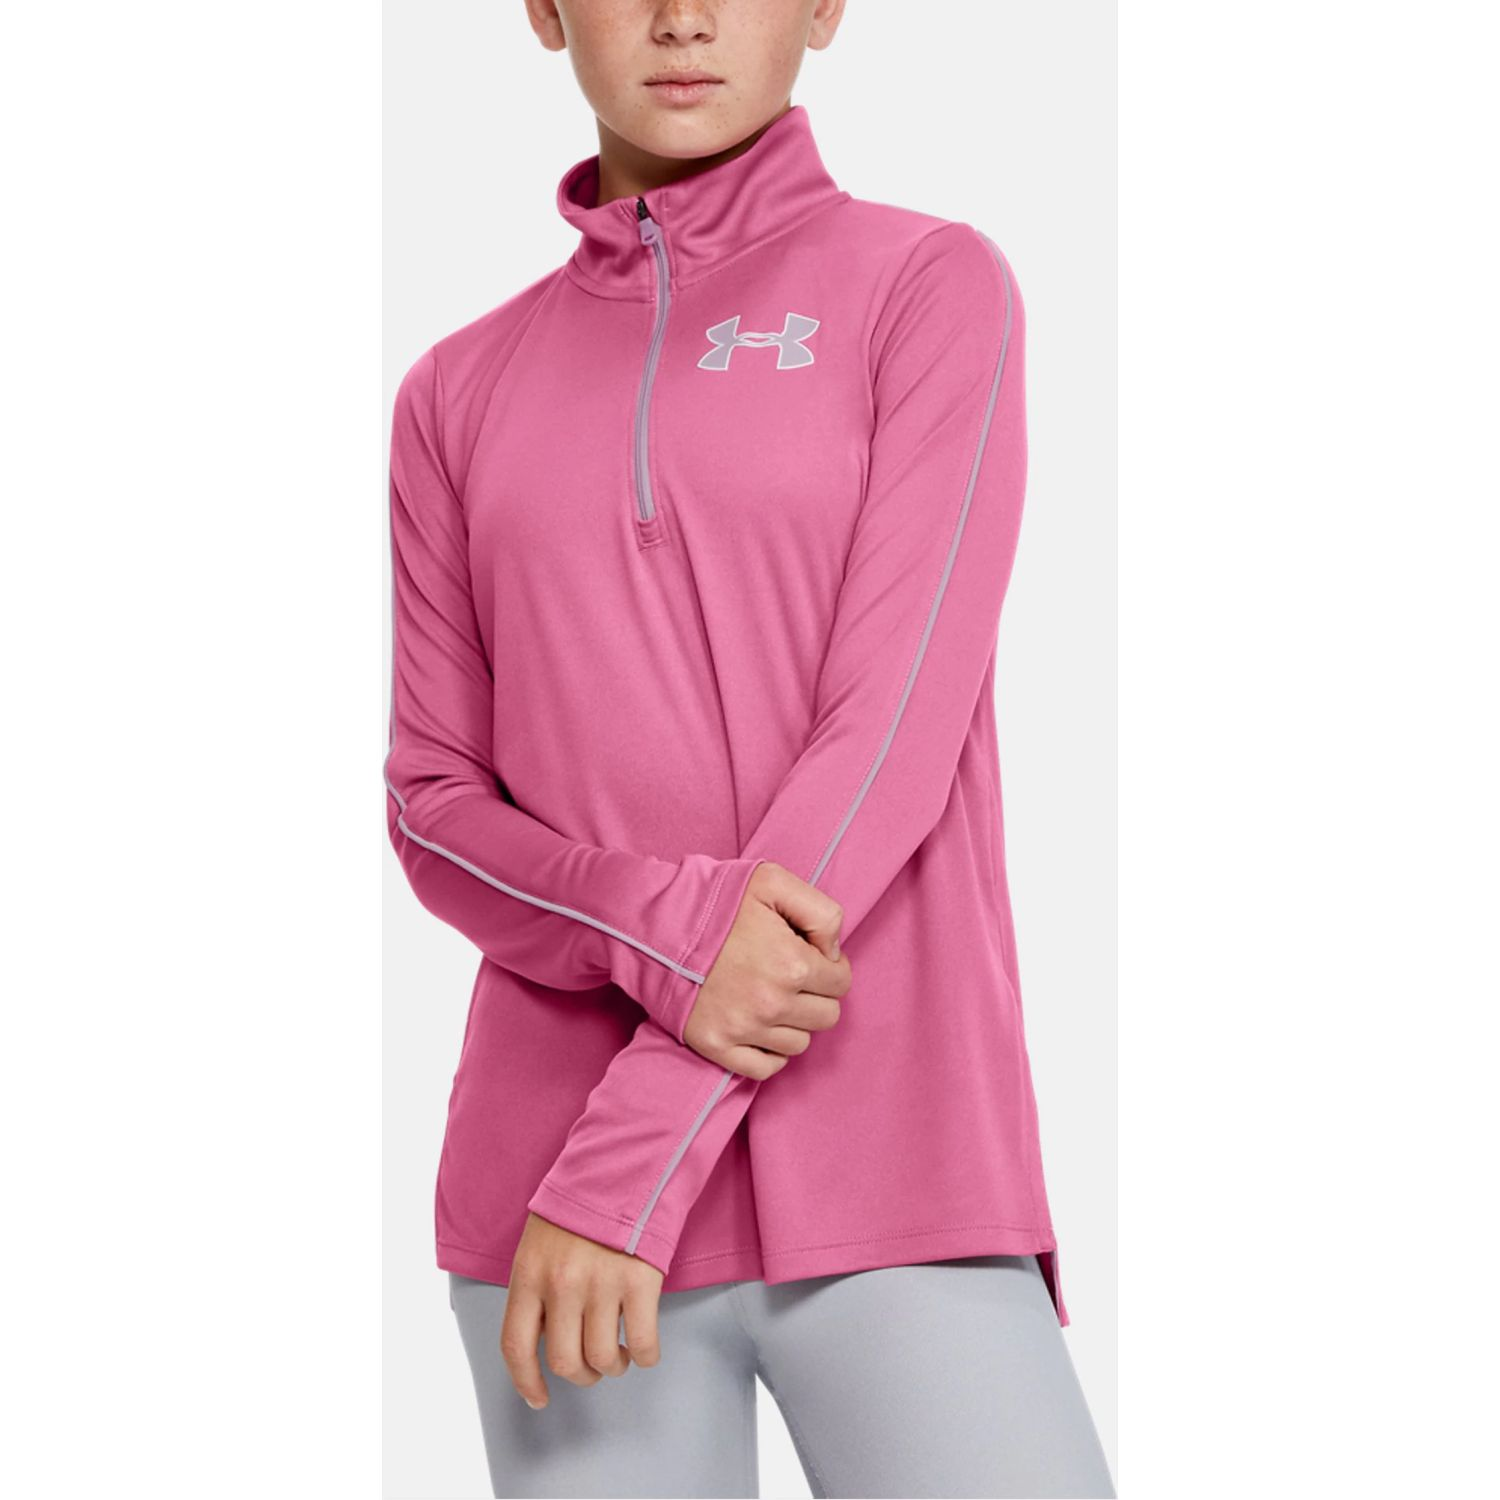 Under Armour Tech 1/2 Zip Rosado Hoodies y sudaderas de moda